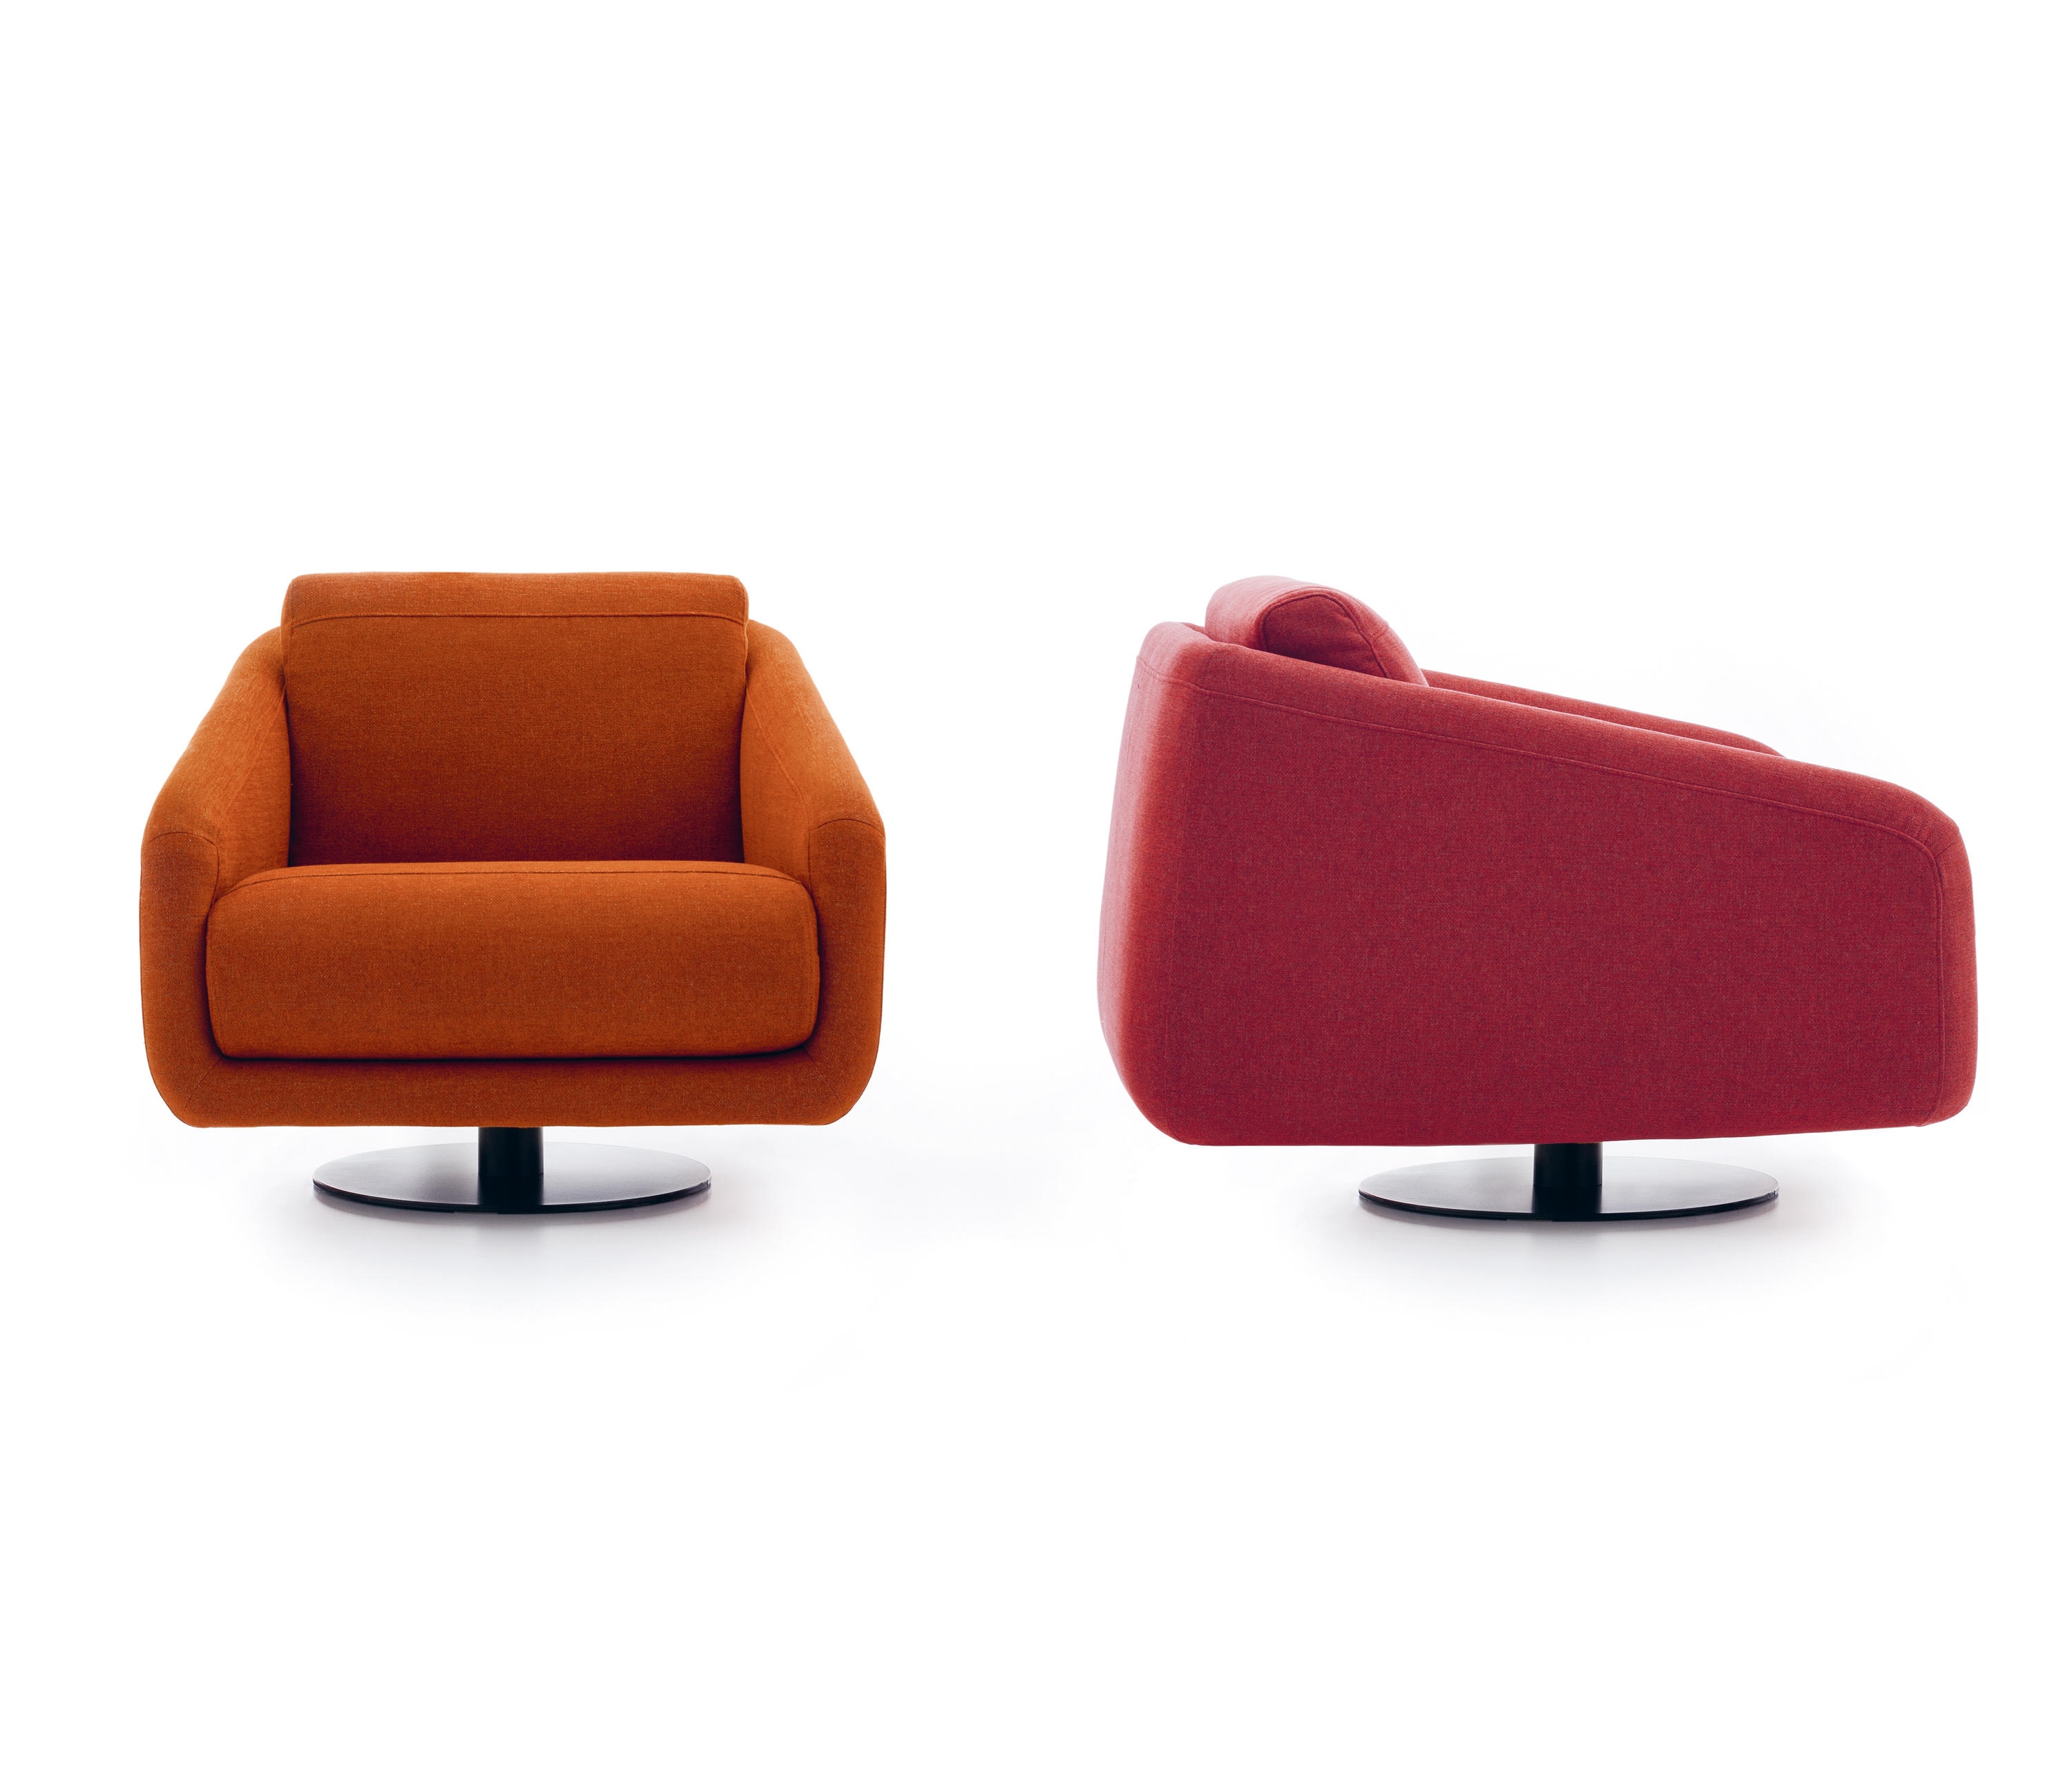 Class Armchair by Carlo Colombo for DITRE ITALIA